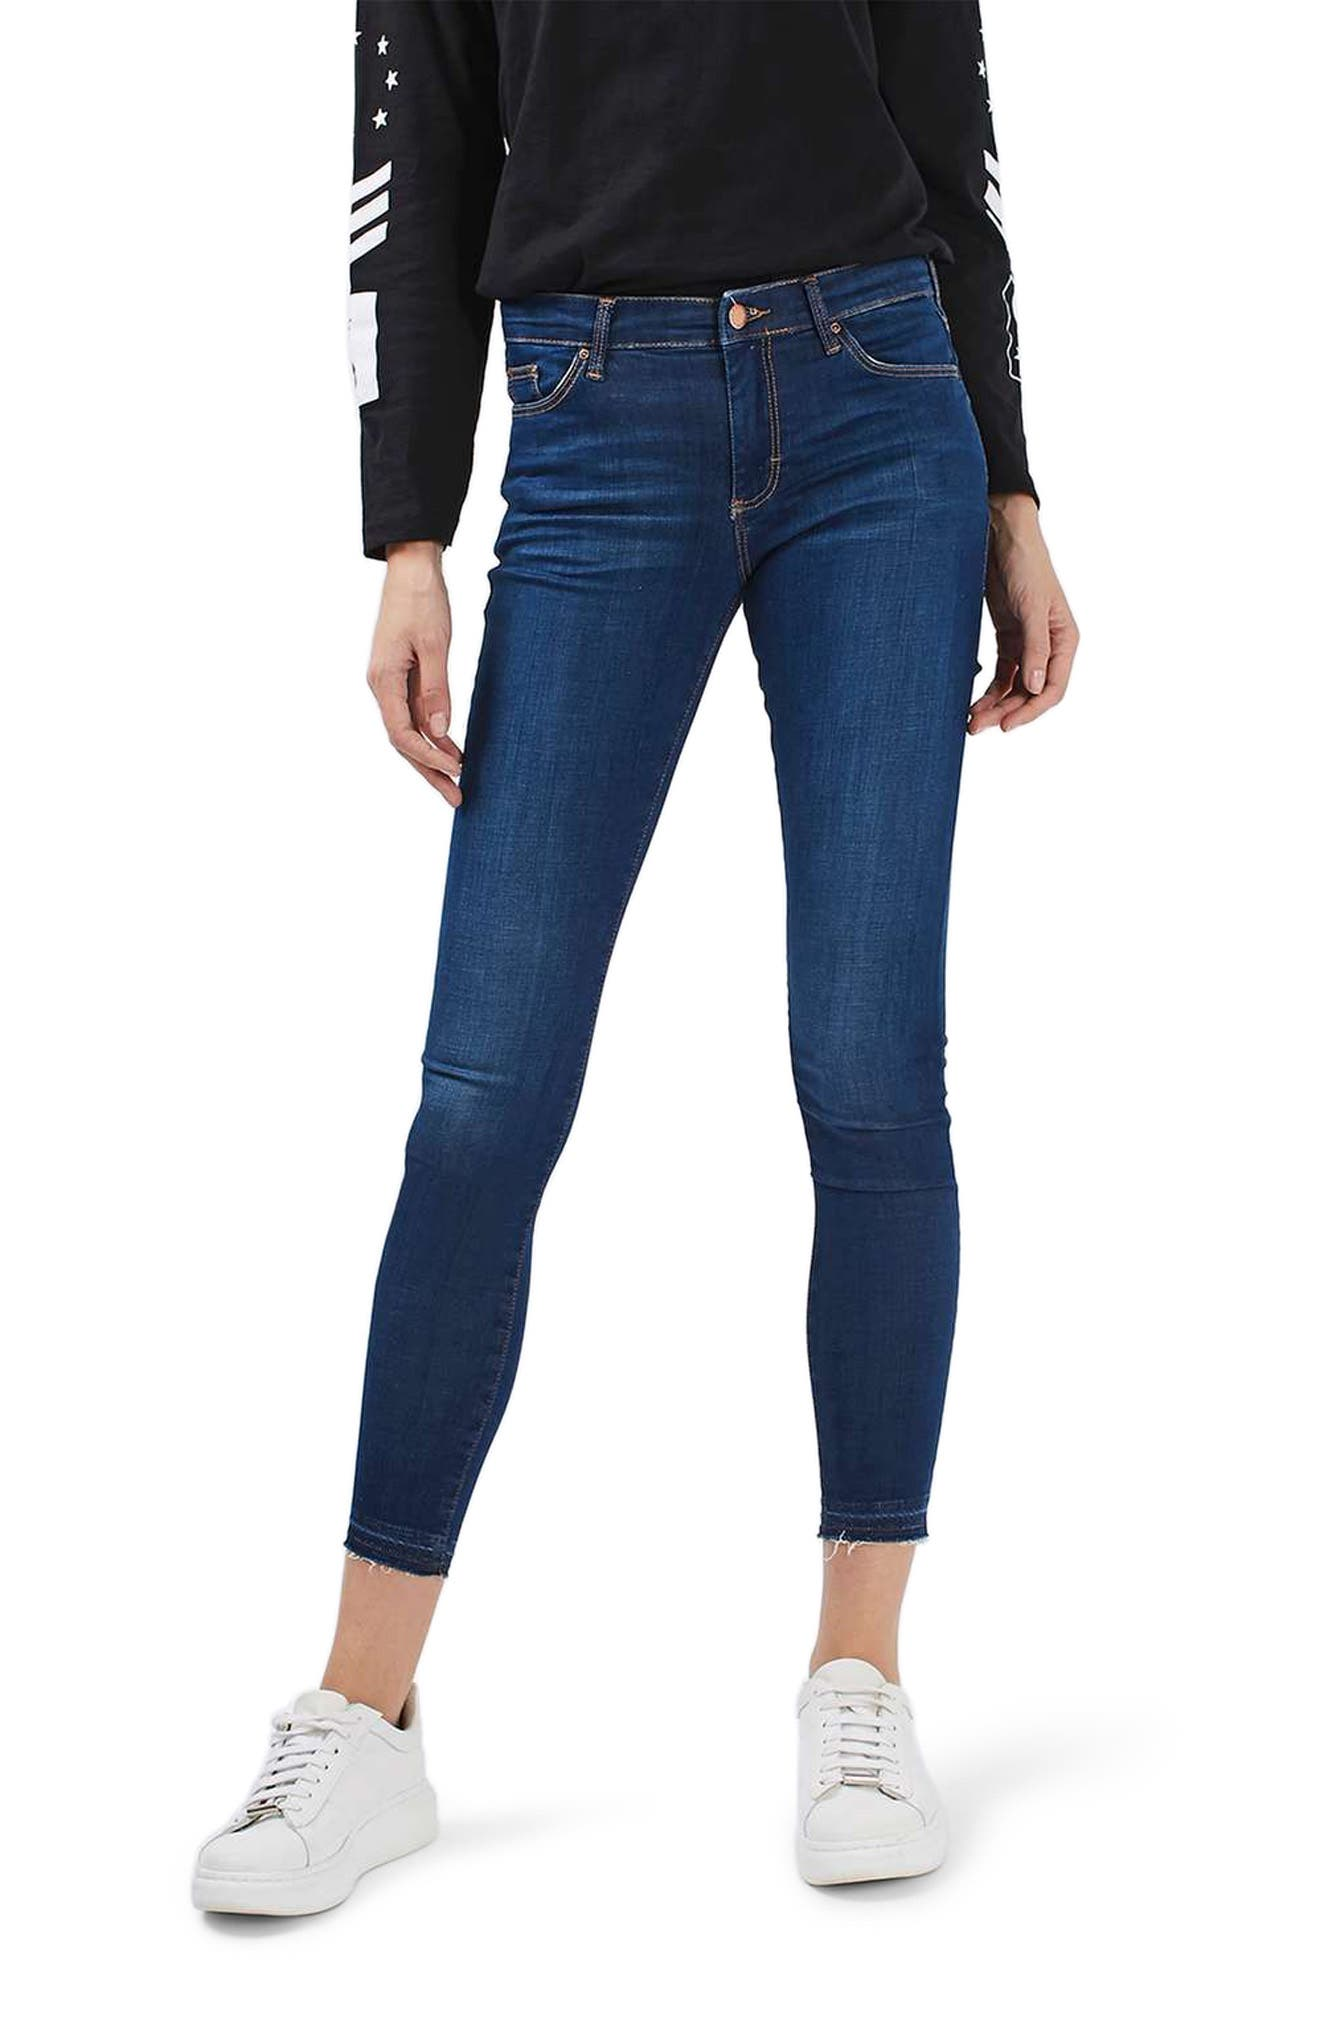 Leigh Released Hem Skinny Jeans,                         Main,                         color, Indigo